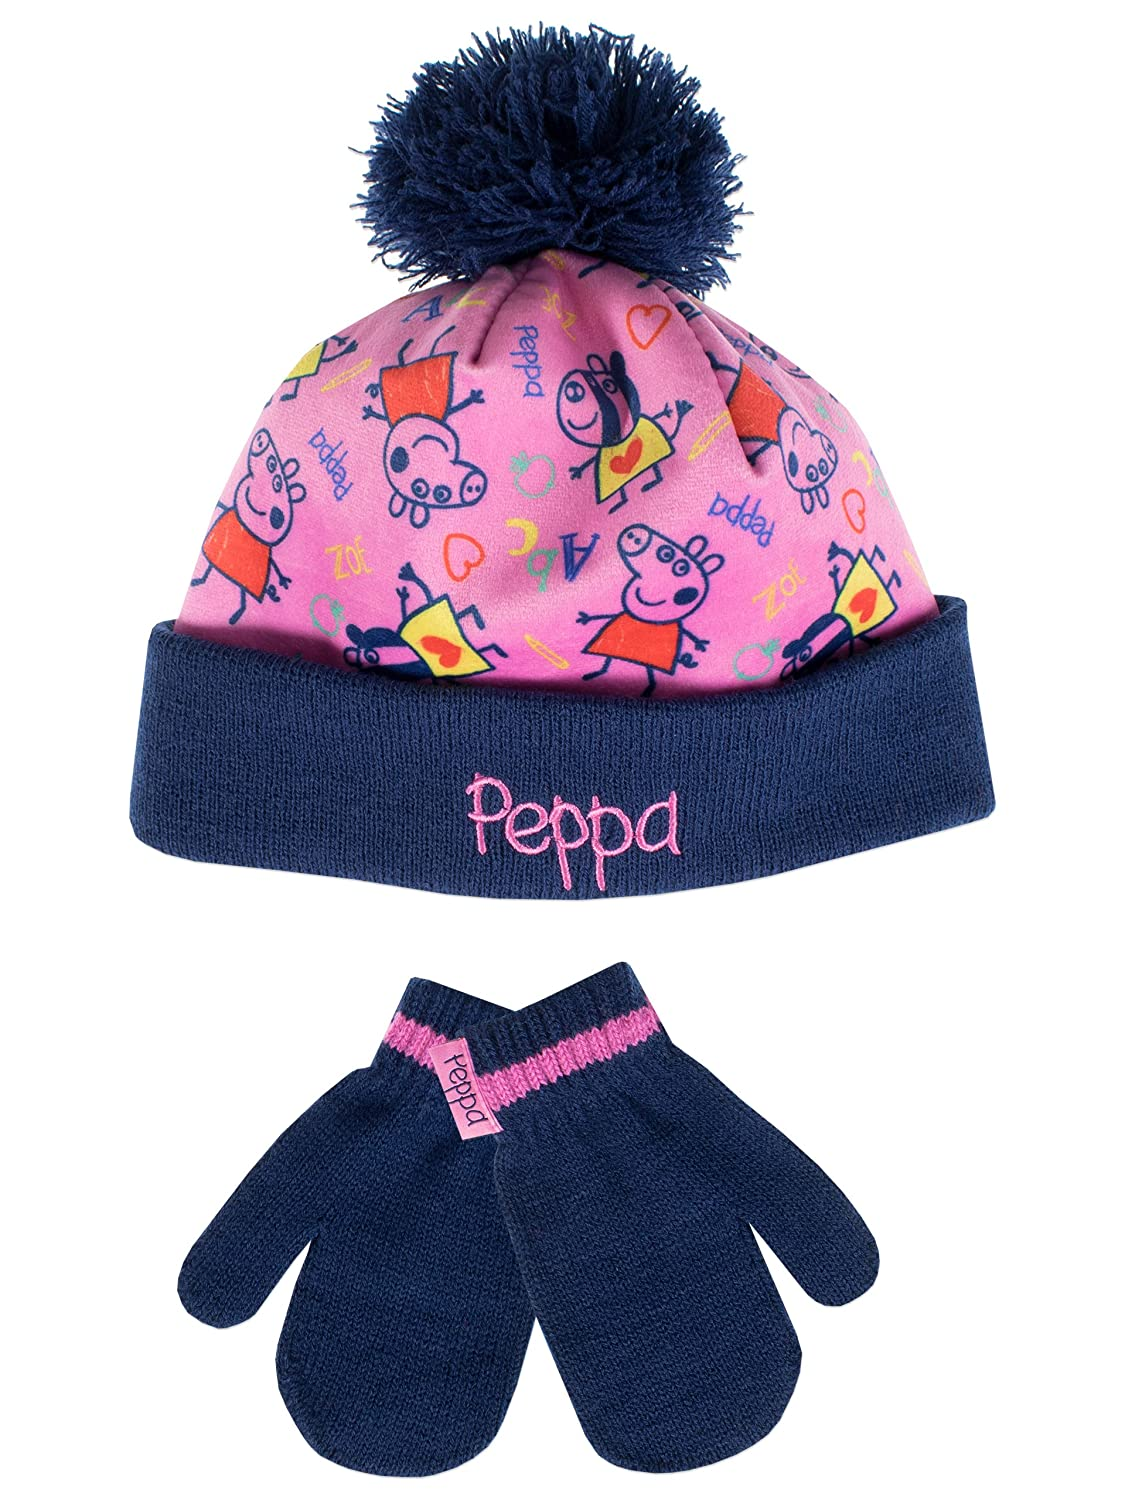 Peppa Pig Girls' Peppa Pig Hat and Gloves Set Age 6 to 8 Years